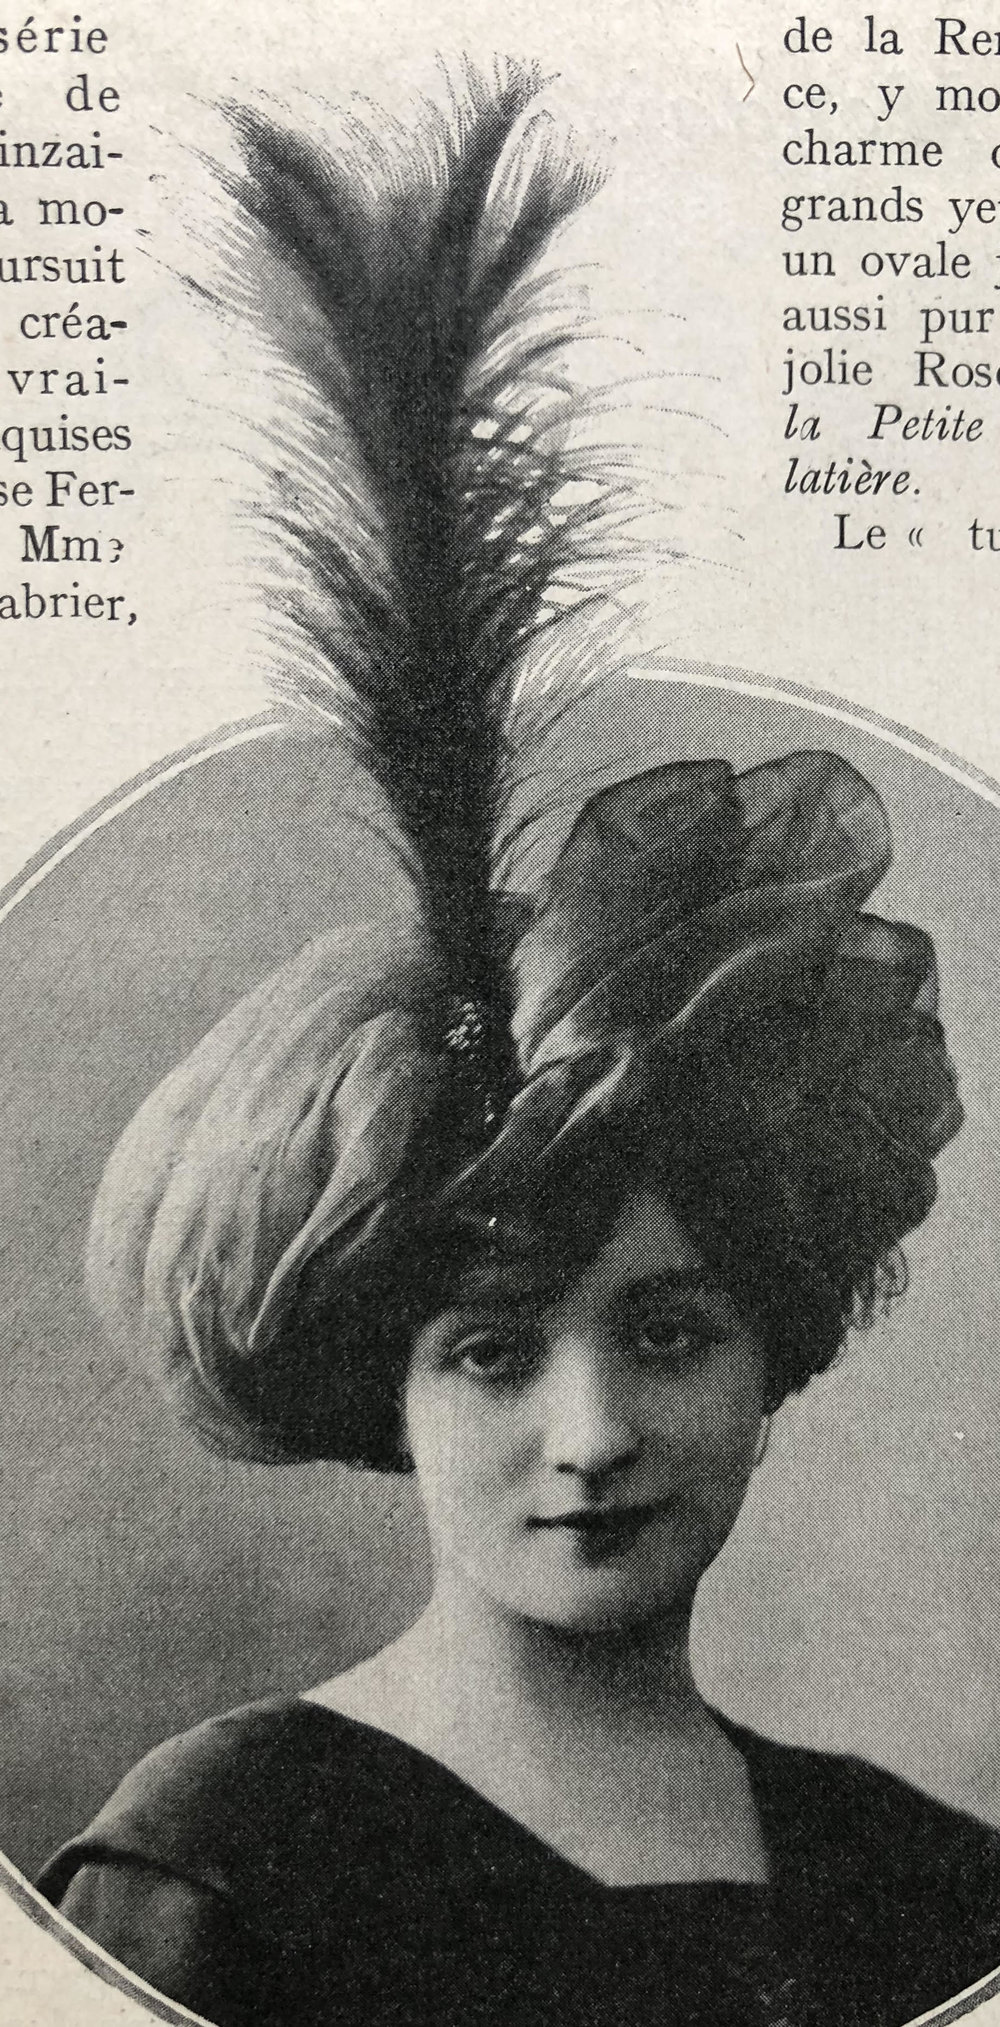 December 1909 Hat by Denise Ferreto Maison Heinz-Boyer, 26, place Vendôme, Paris   This is said to be the ultra Parisian taste in style at the time.